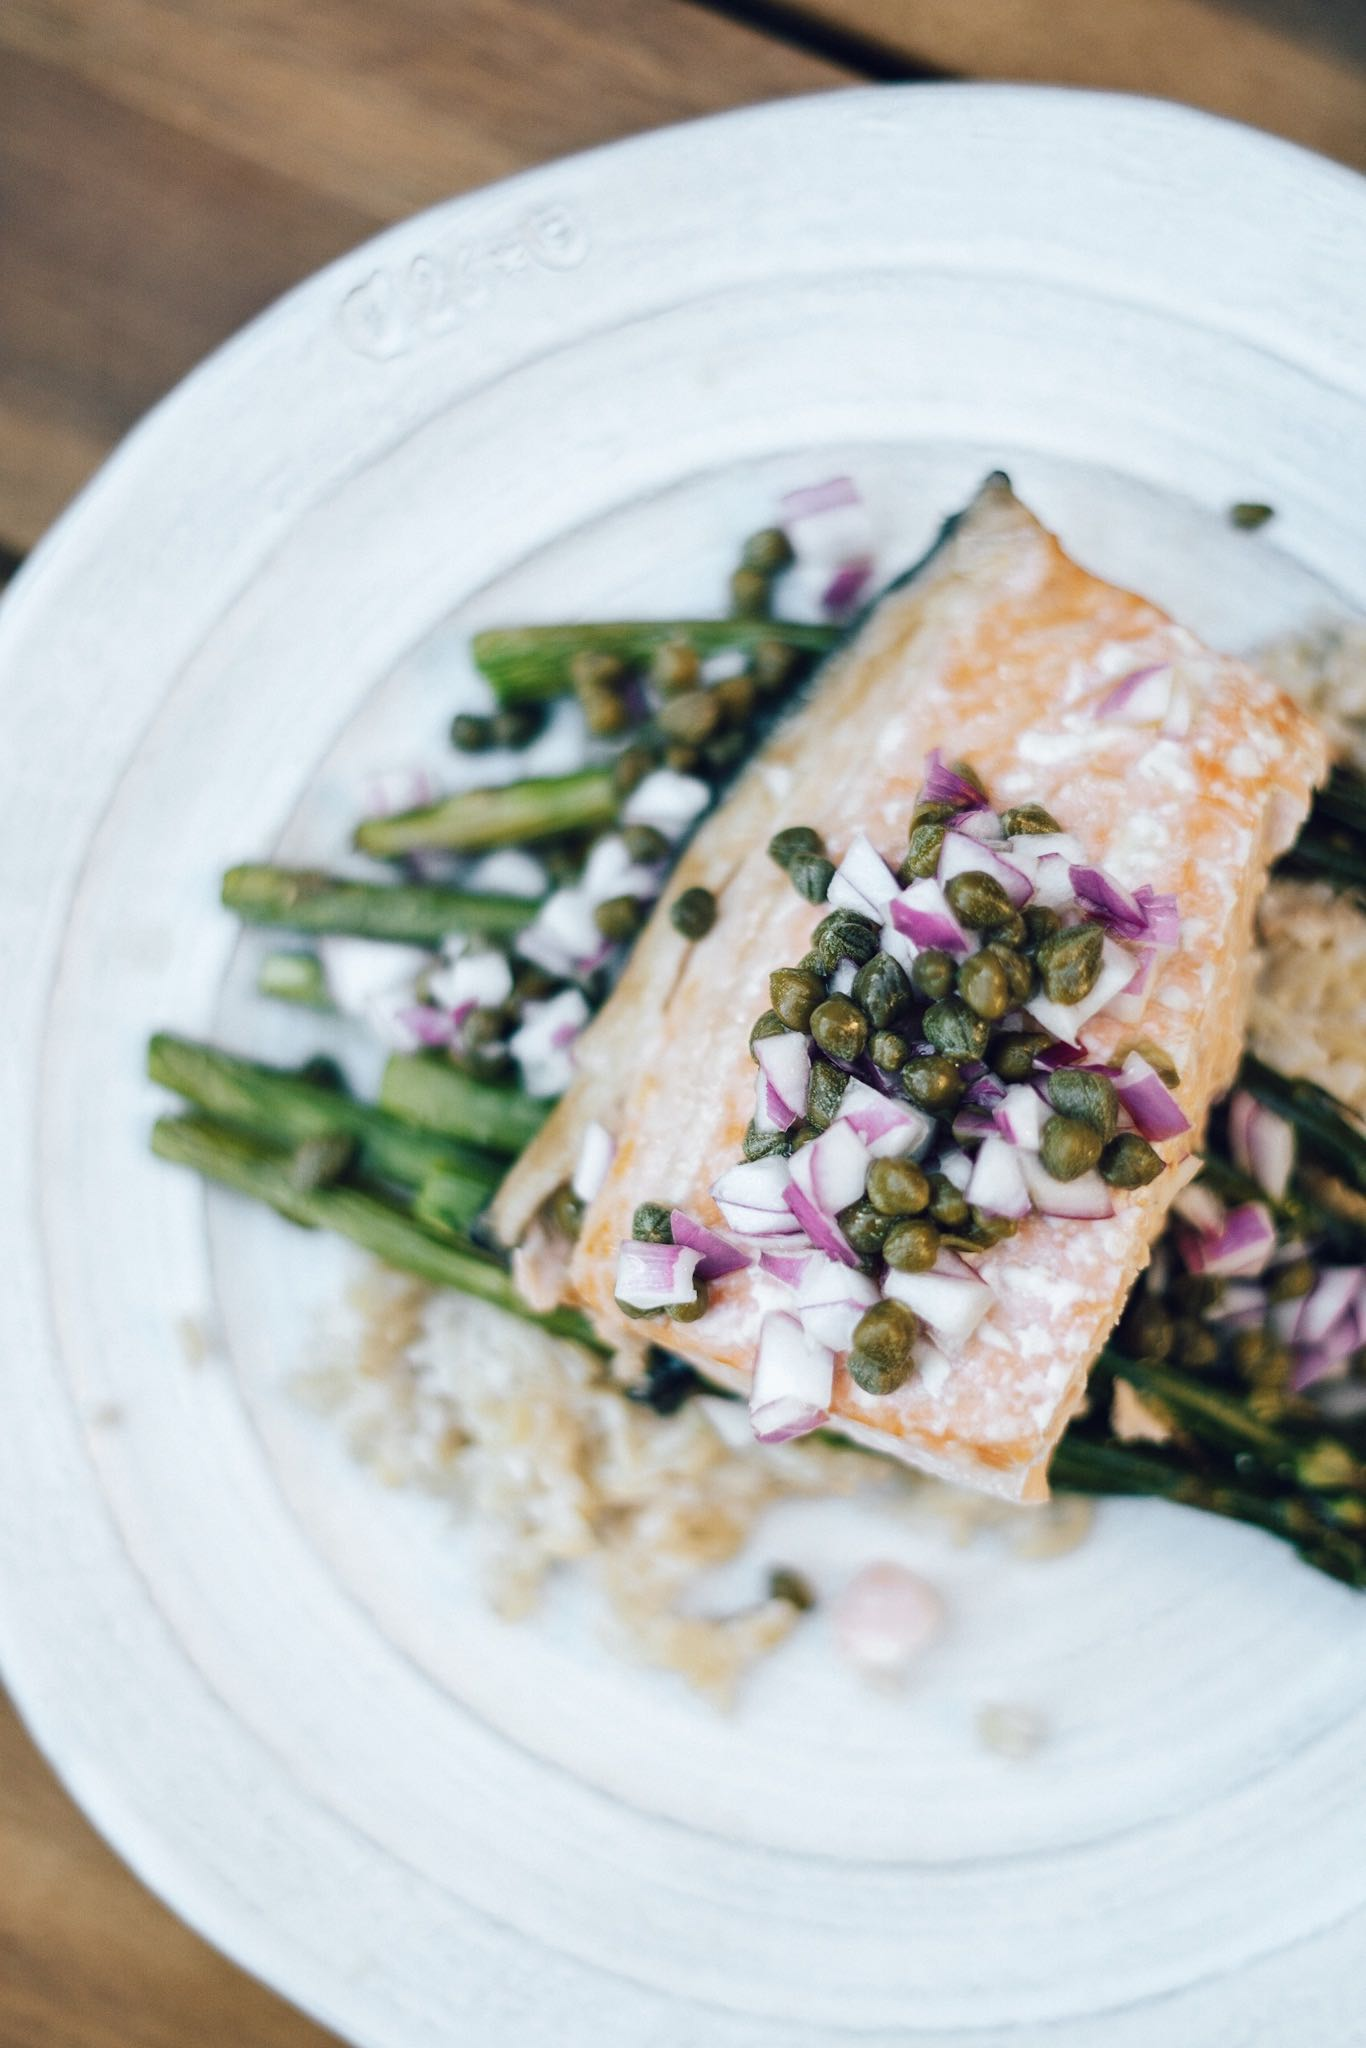 Asparagus Recipes You Will Love - Simple Pan Seared Sockeye Salmon With Roasted Asparagus, Capers, and Red Onion